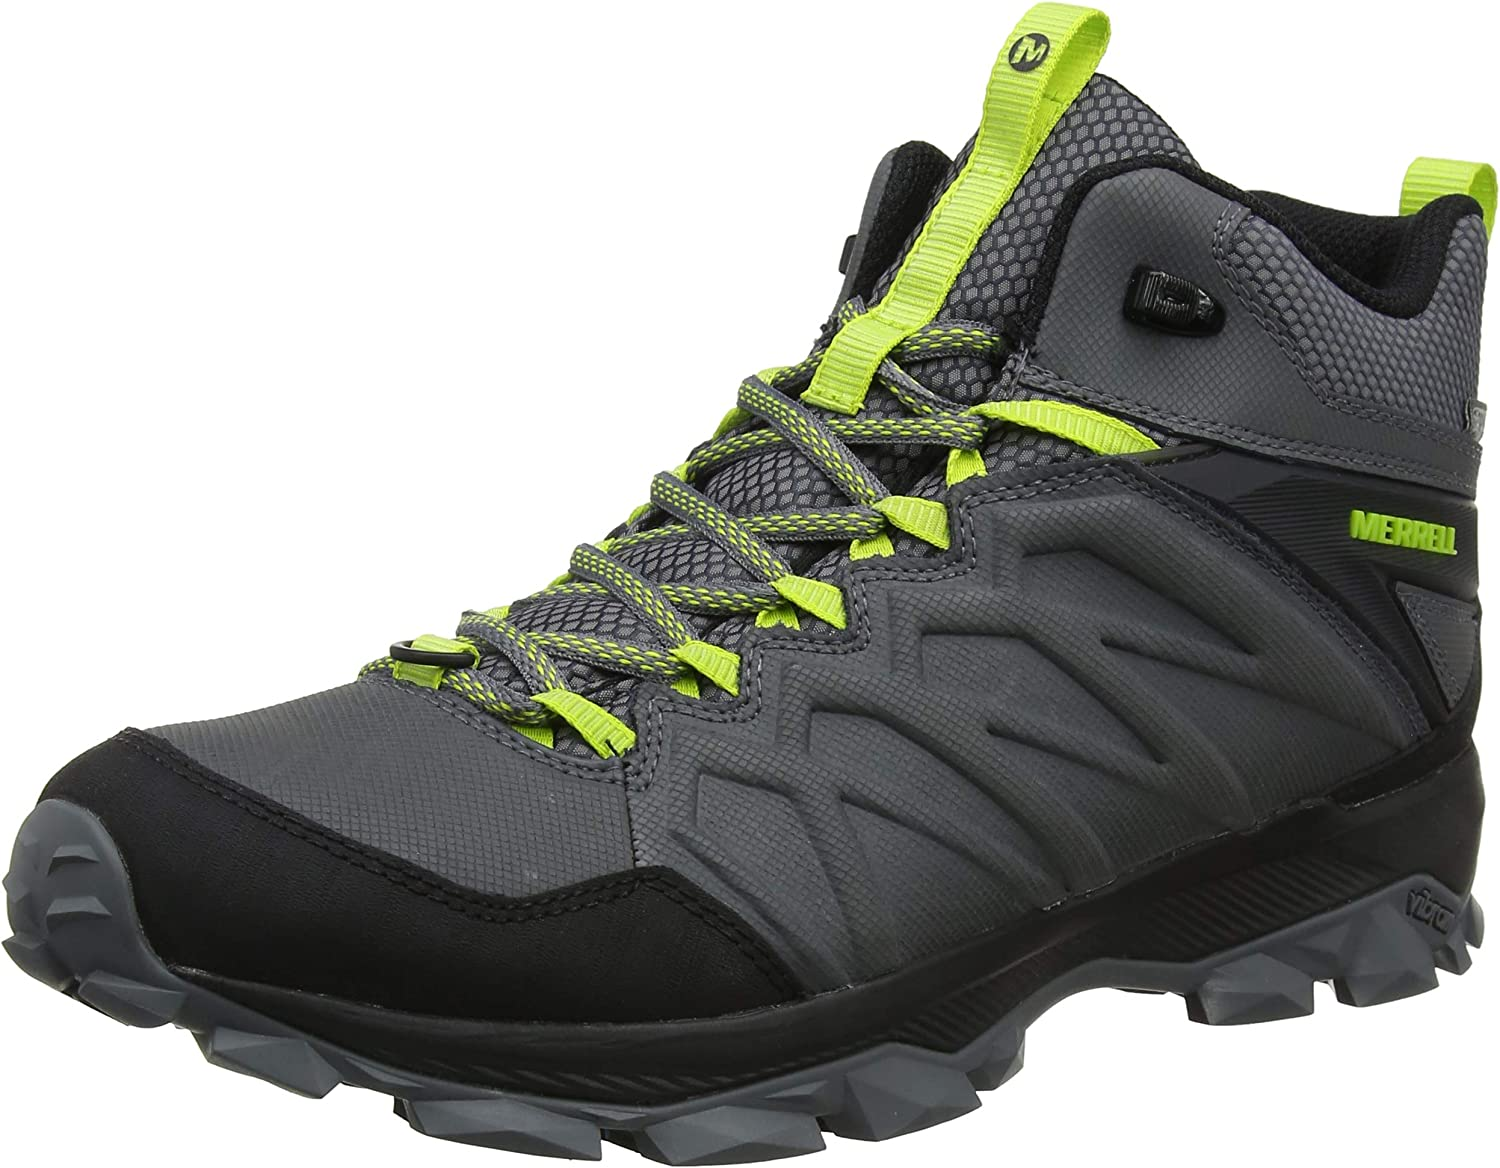 Merrell Men's Thermo Freeze Mid Wp High Rise Hiking Boots